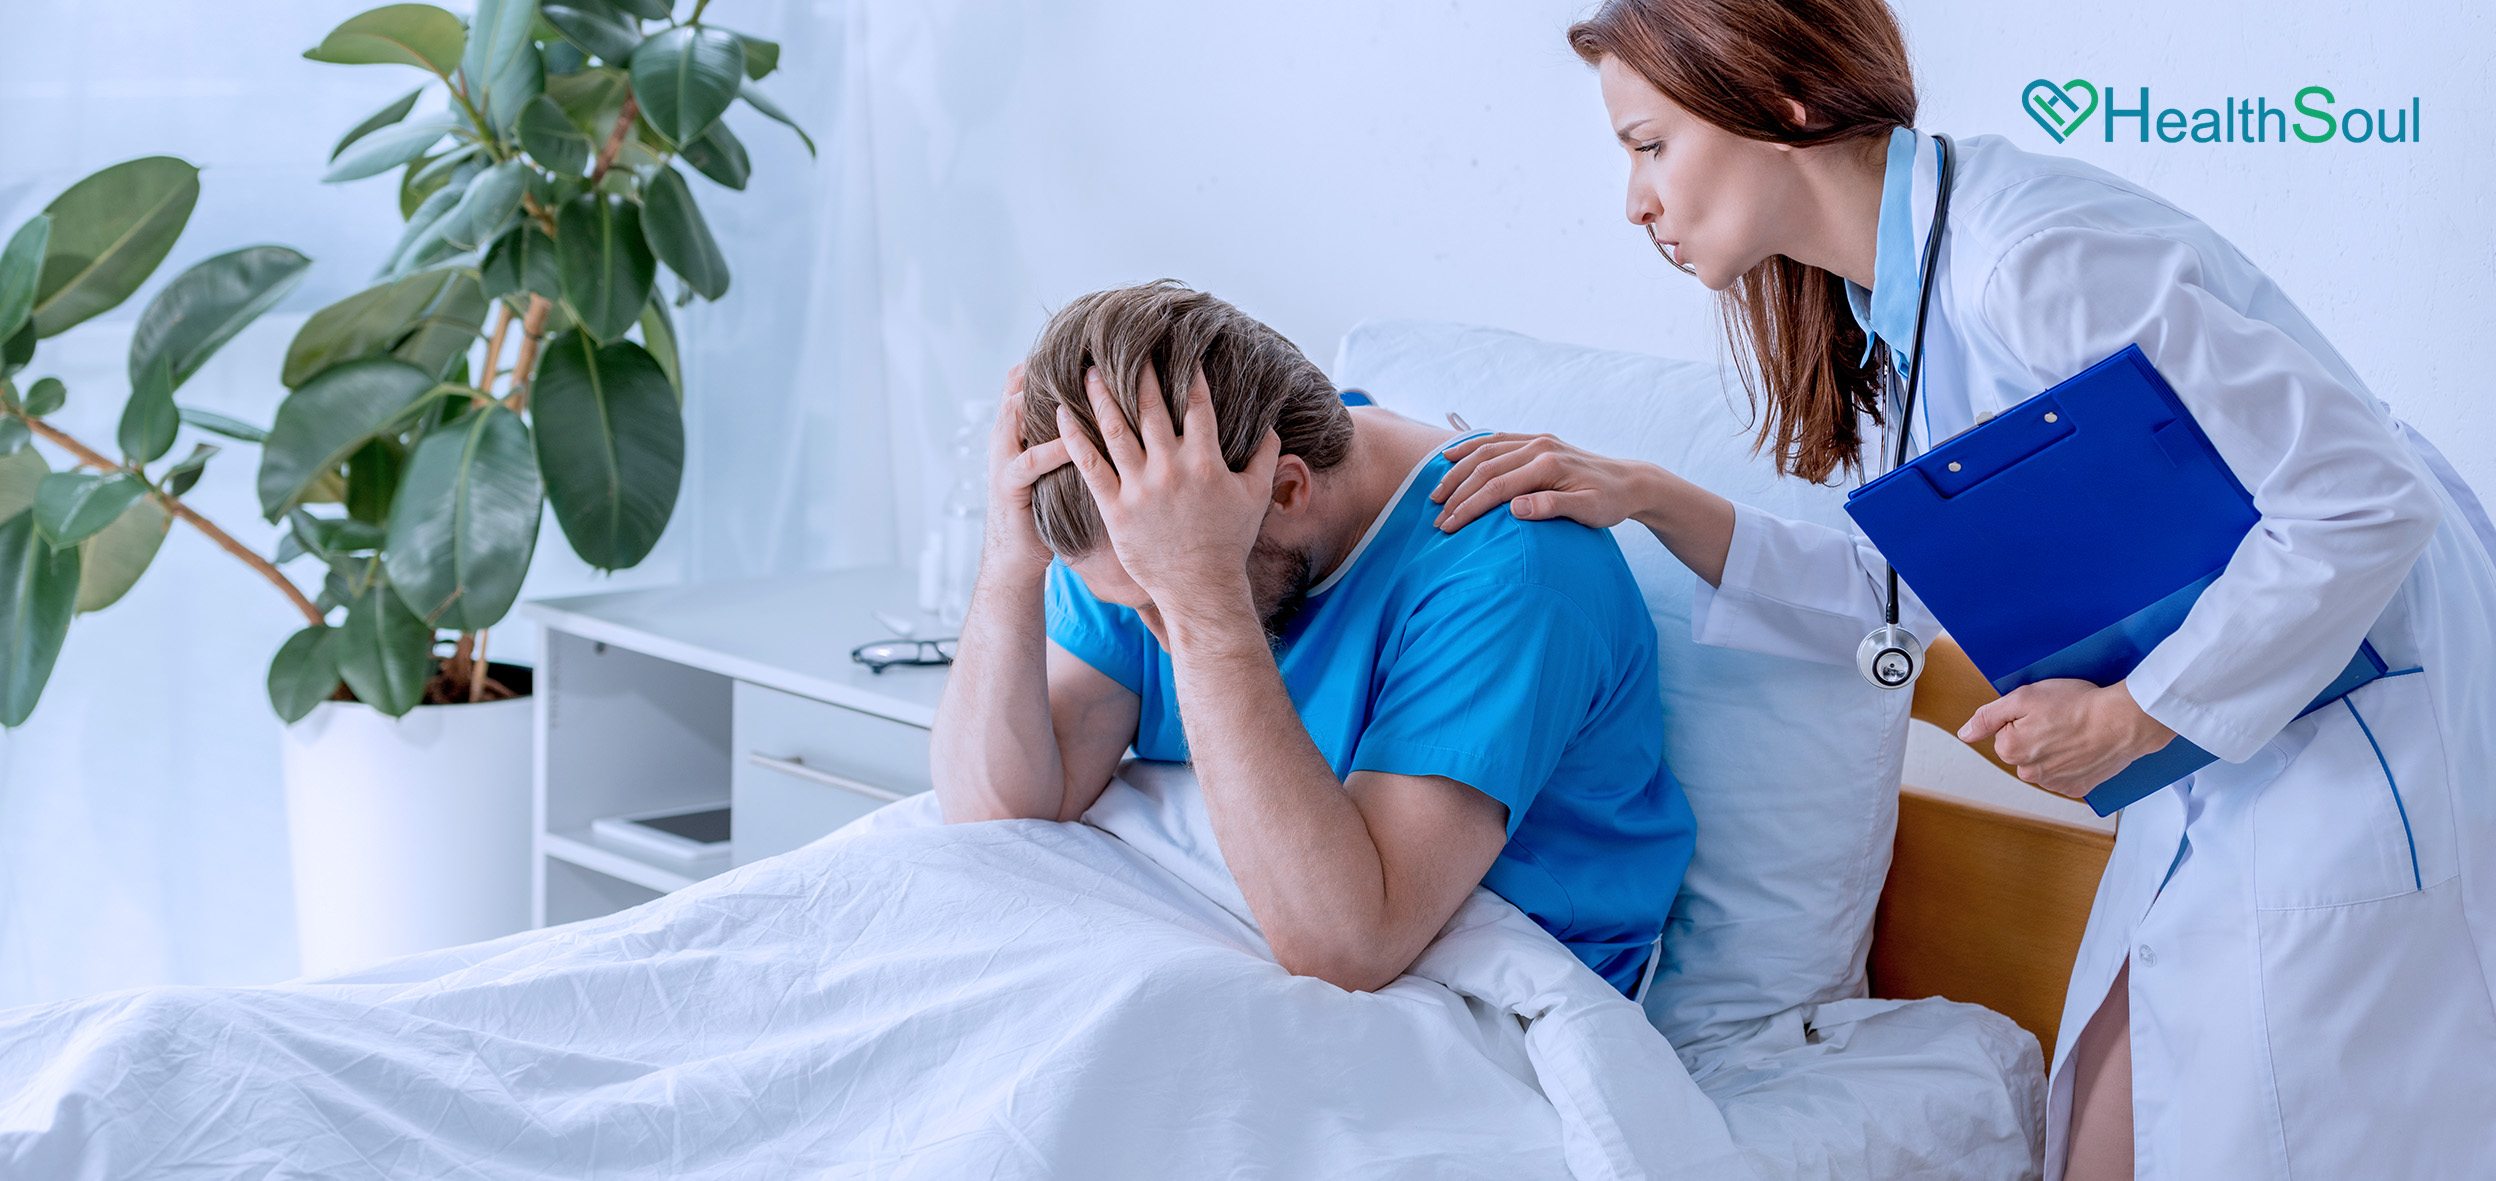 How to cope with a traumatic and life altering injury from a major car crash | HealthSoul